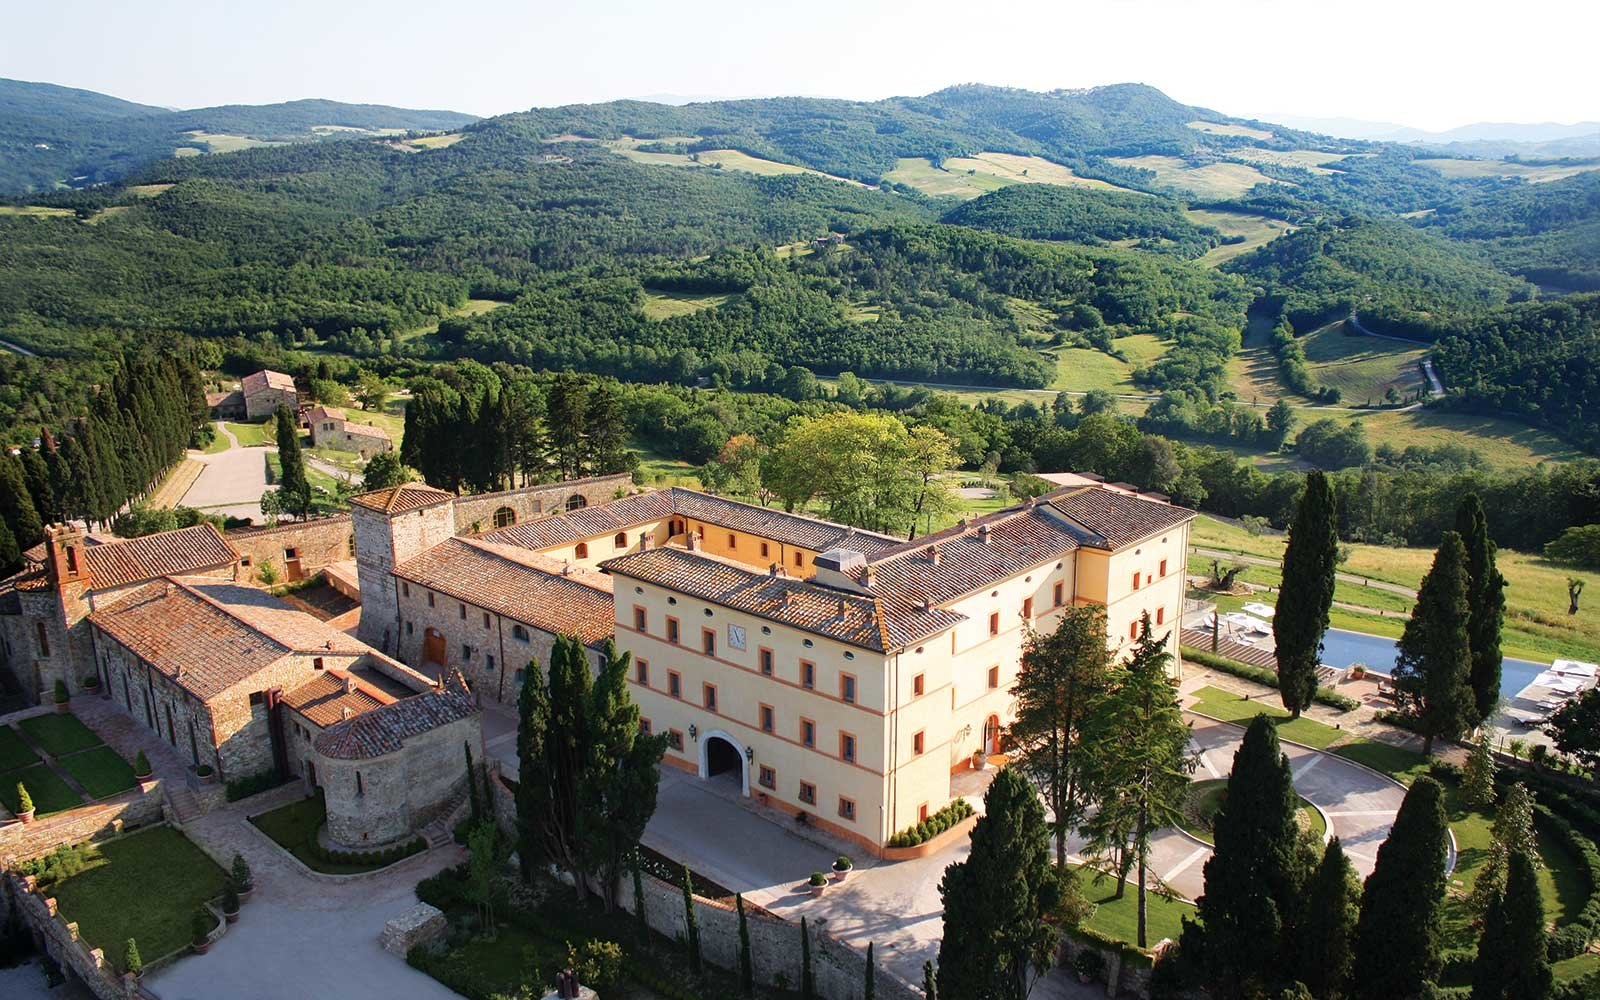 Hotel Castello di Casole - A Timbers Resort Hotel in Europe